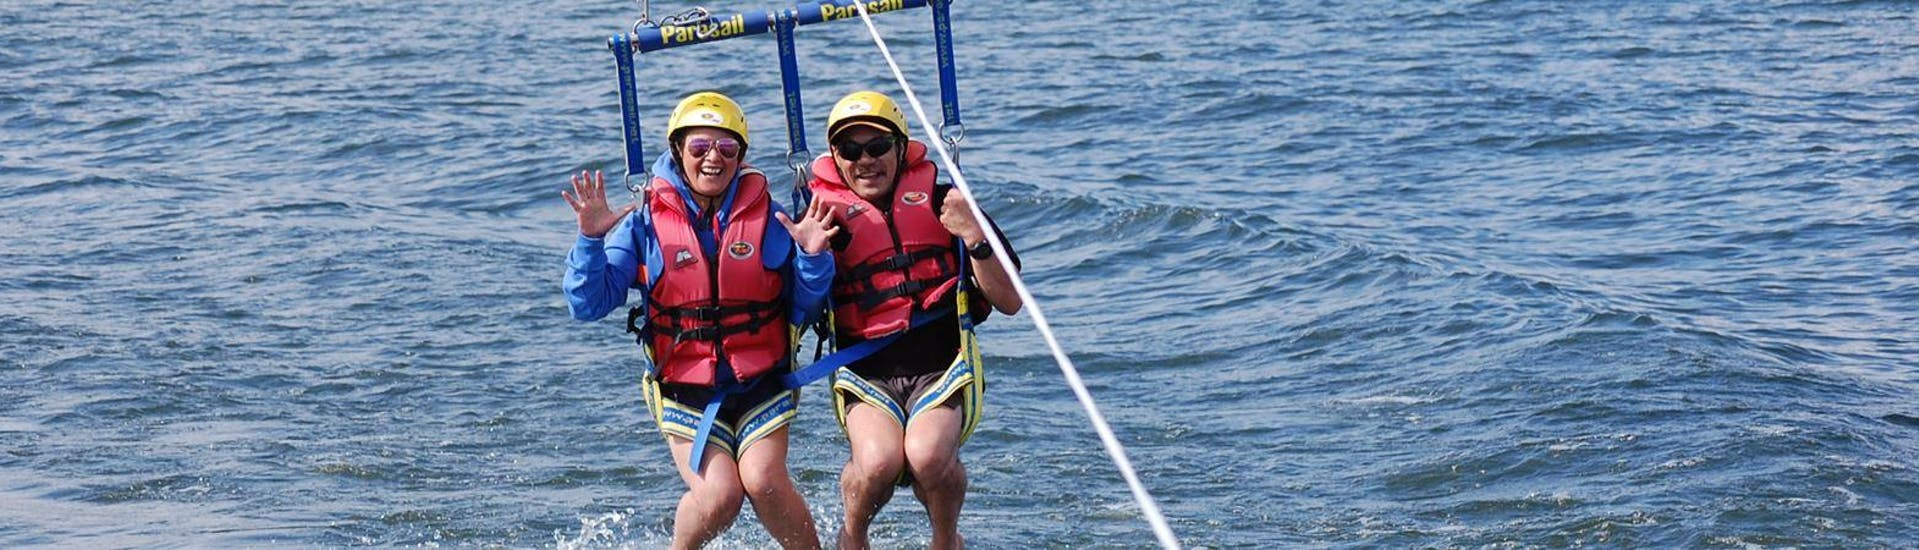 A couple is seemingly excited as they prepare to take off for some Parasailing in Rotorua with Katoa Lake Rotorua.